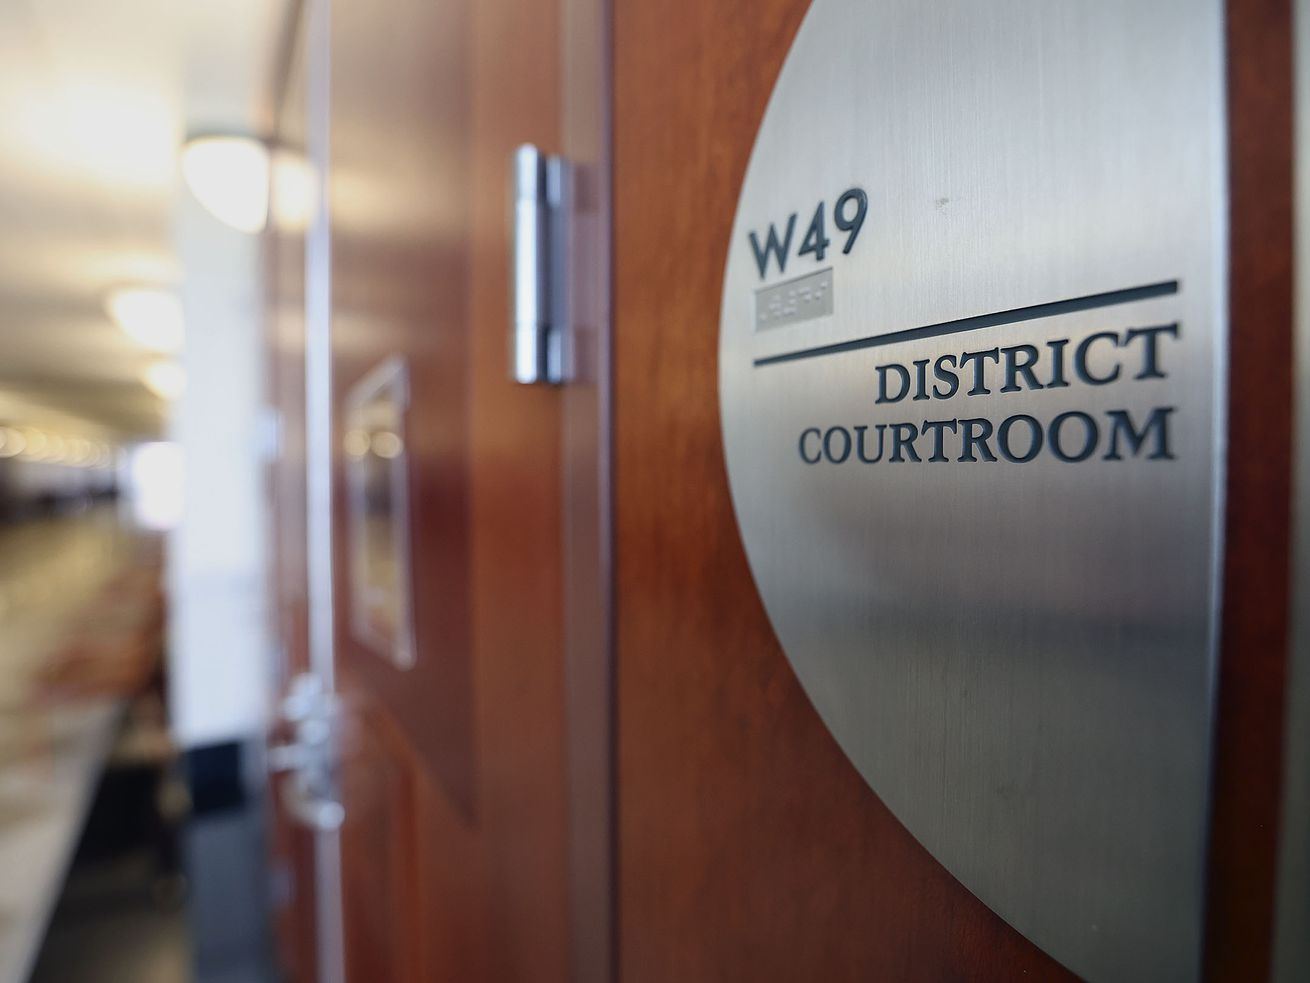 The entrance to a courtroom in the Matheson Courthouse in Salt Lake City is pictured on Friday, Jan. 22, 2021.